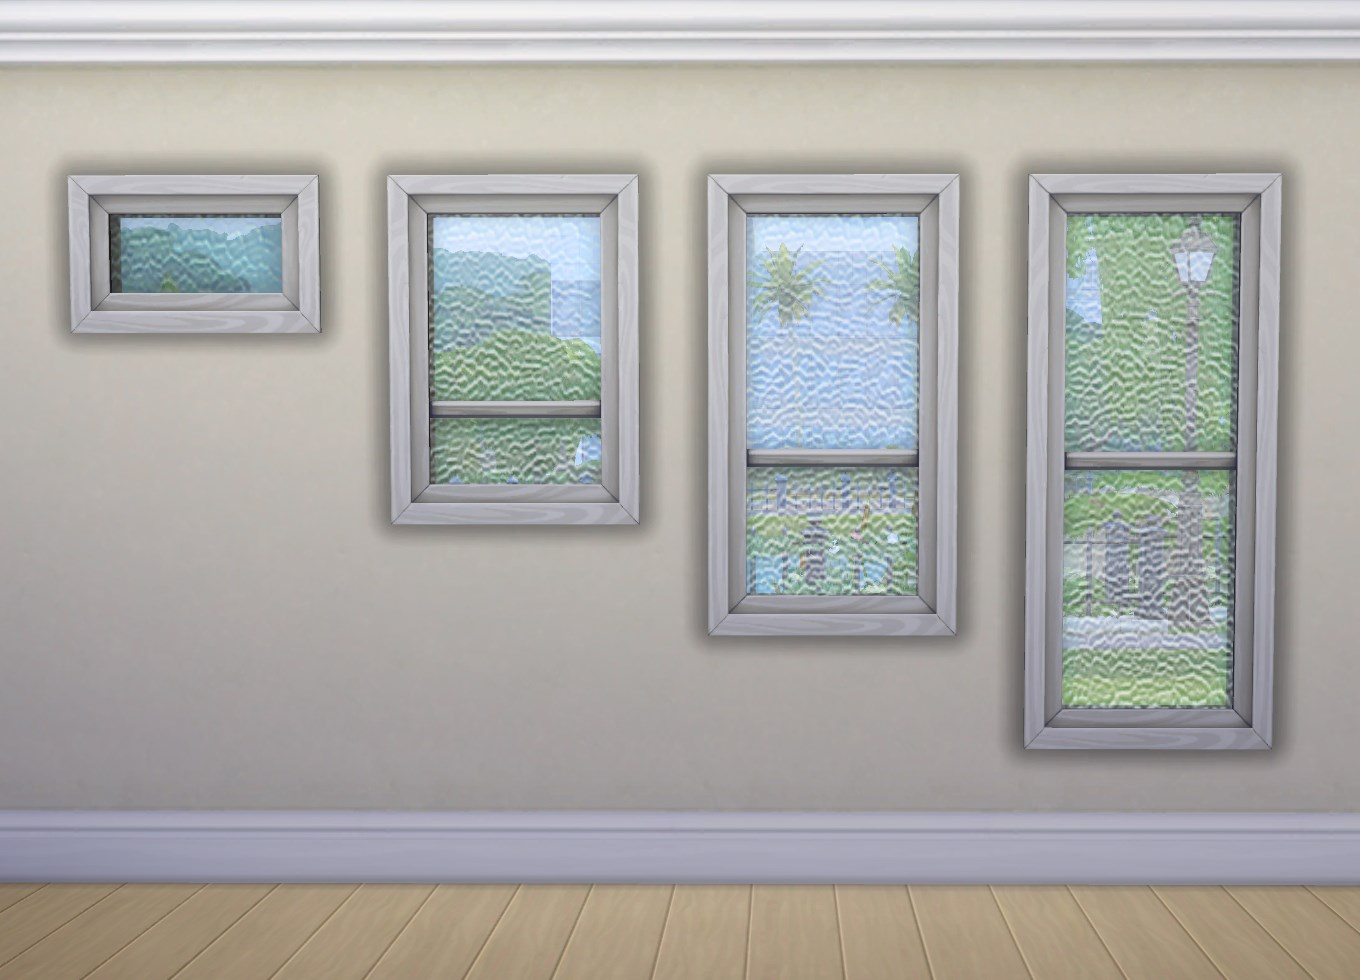 Double Glass 5 3 Window : My sims rolled glass windows by plasticbox